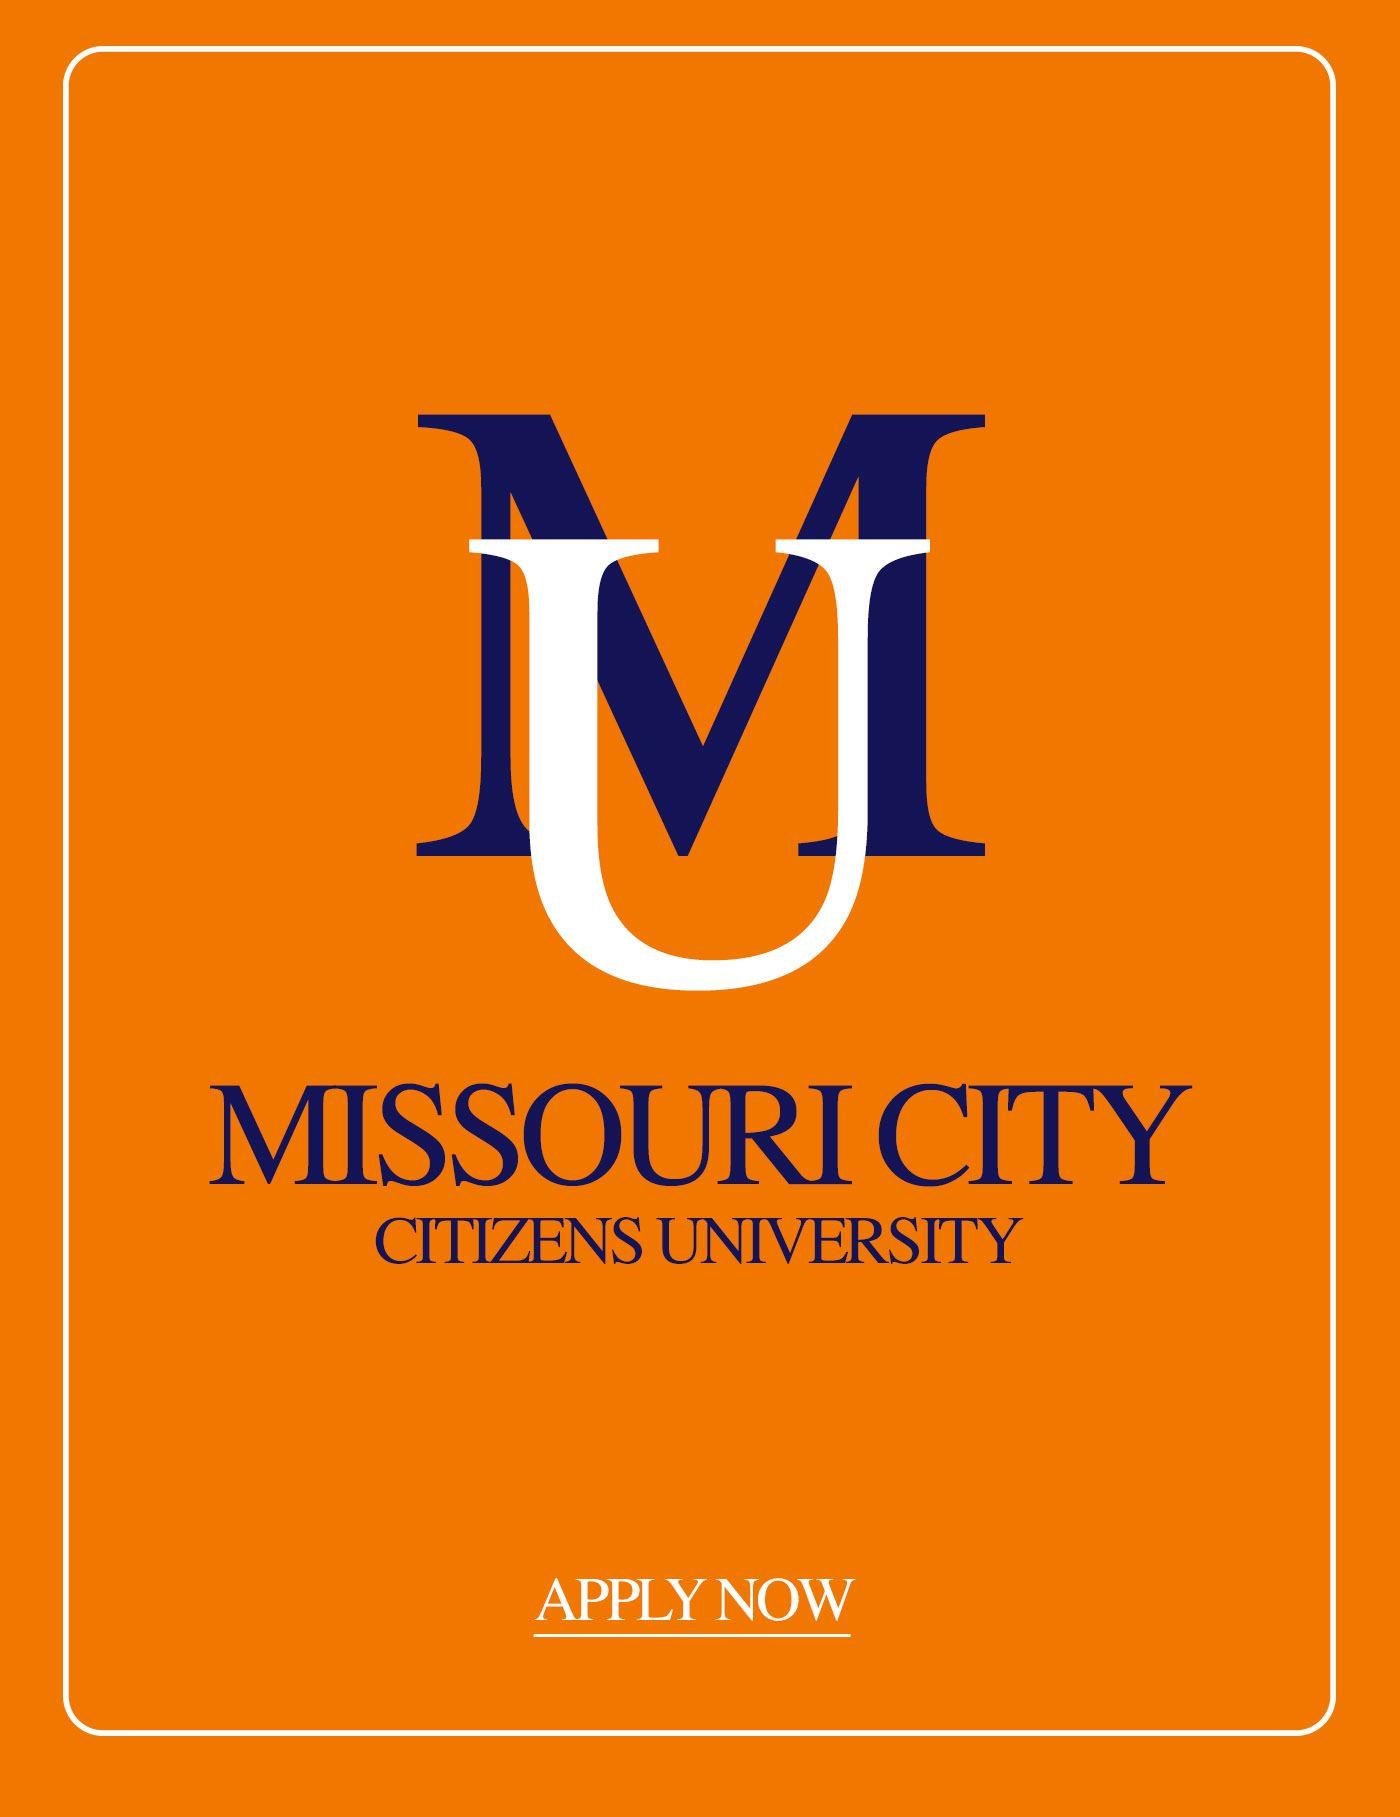 citizensuniversity